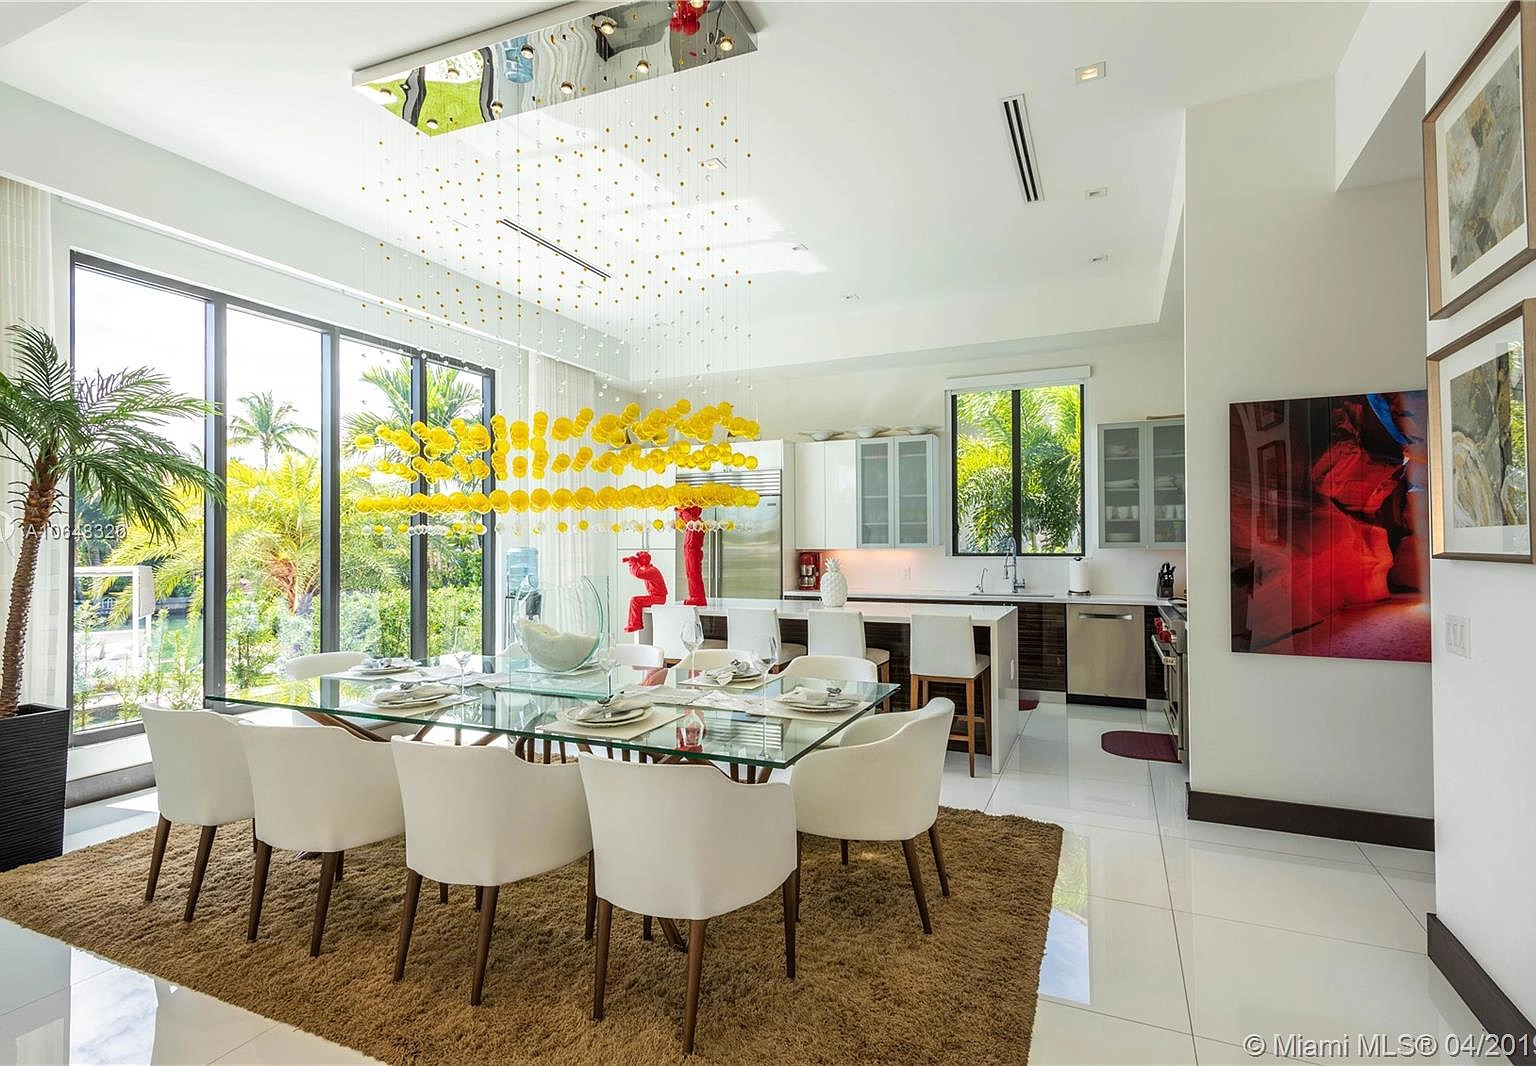 2032 NE 121st Rd, North Miami, FL 33181 - $3,400,000 home for sale, house images, photos and pics gallery